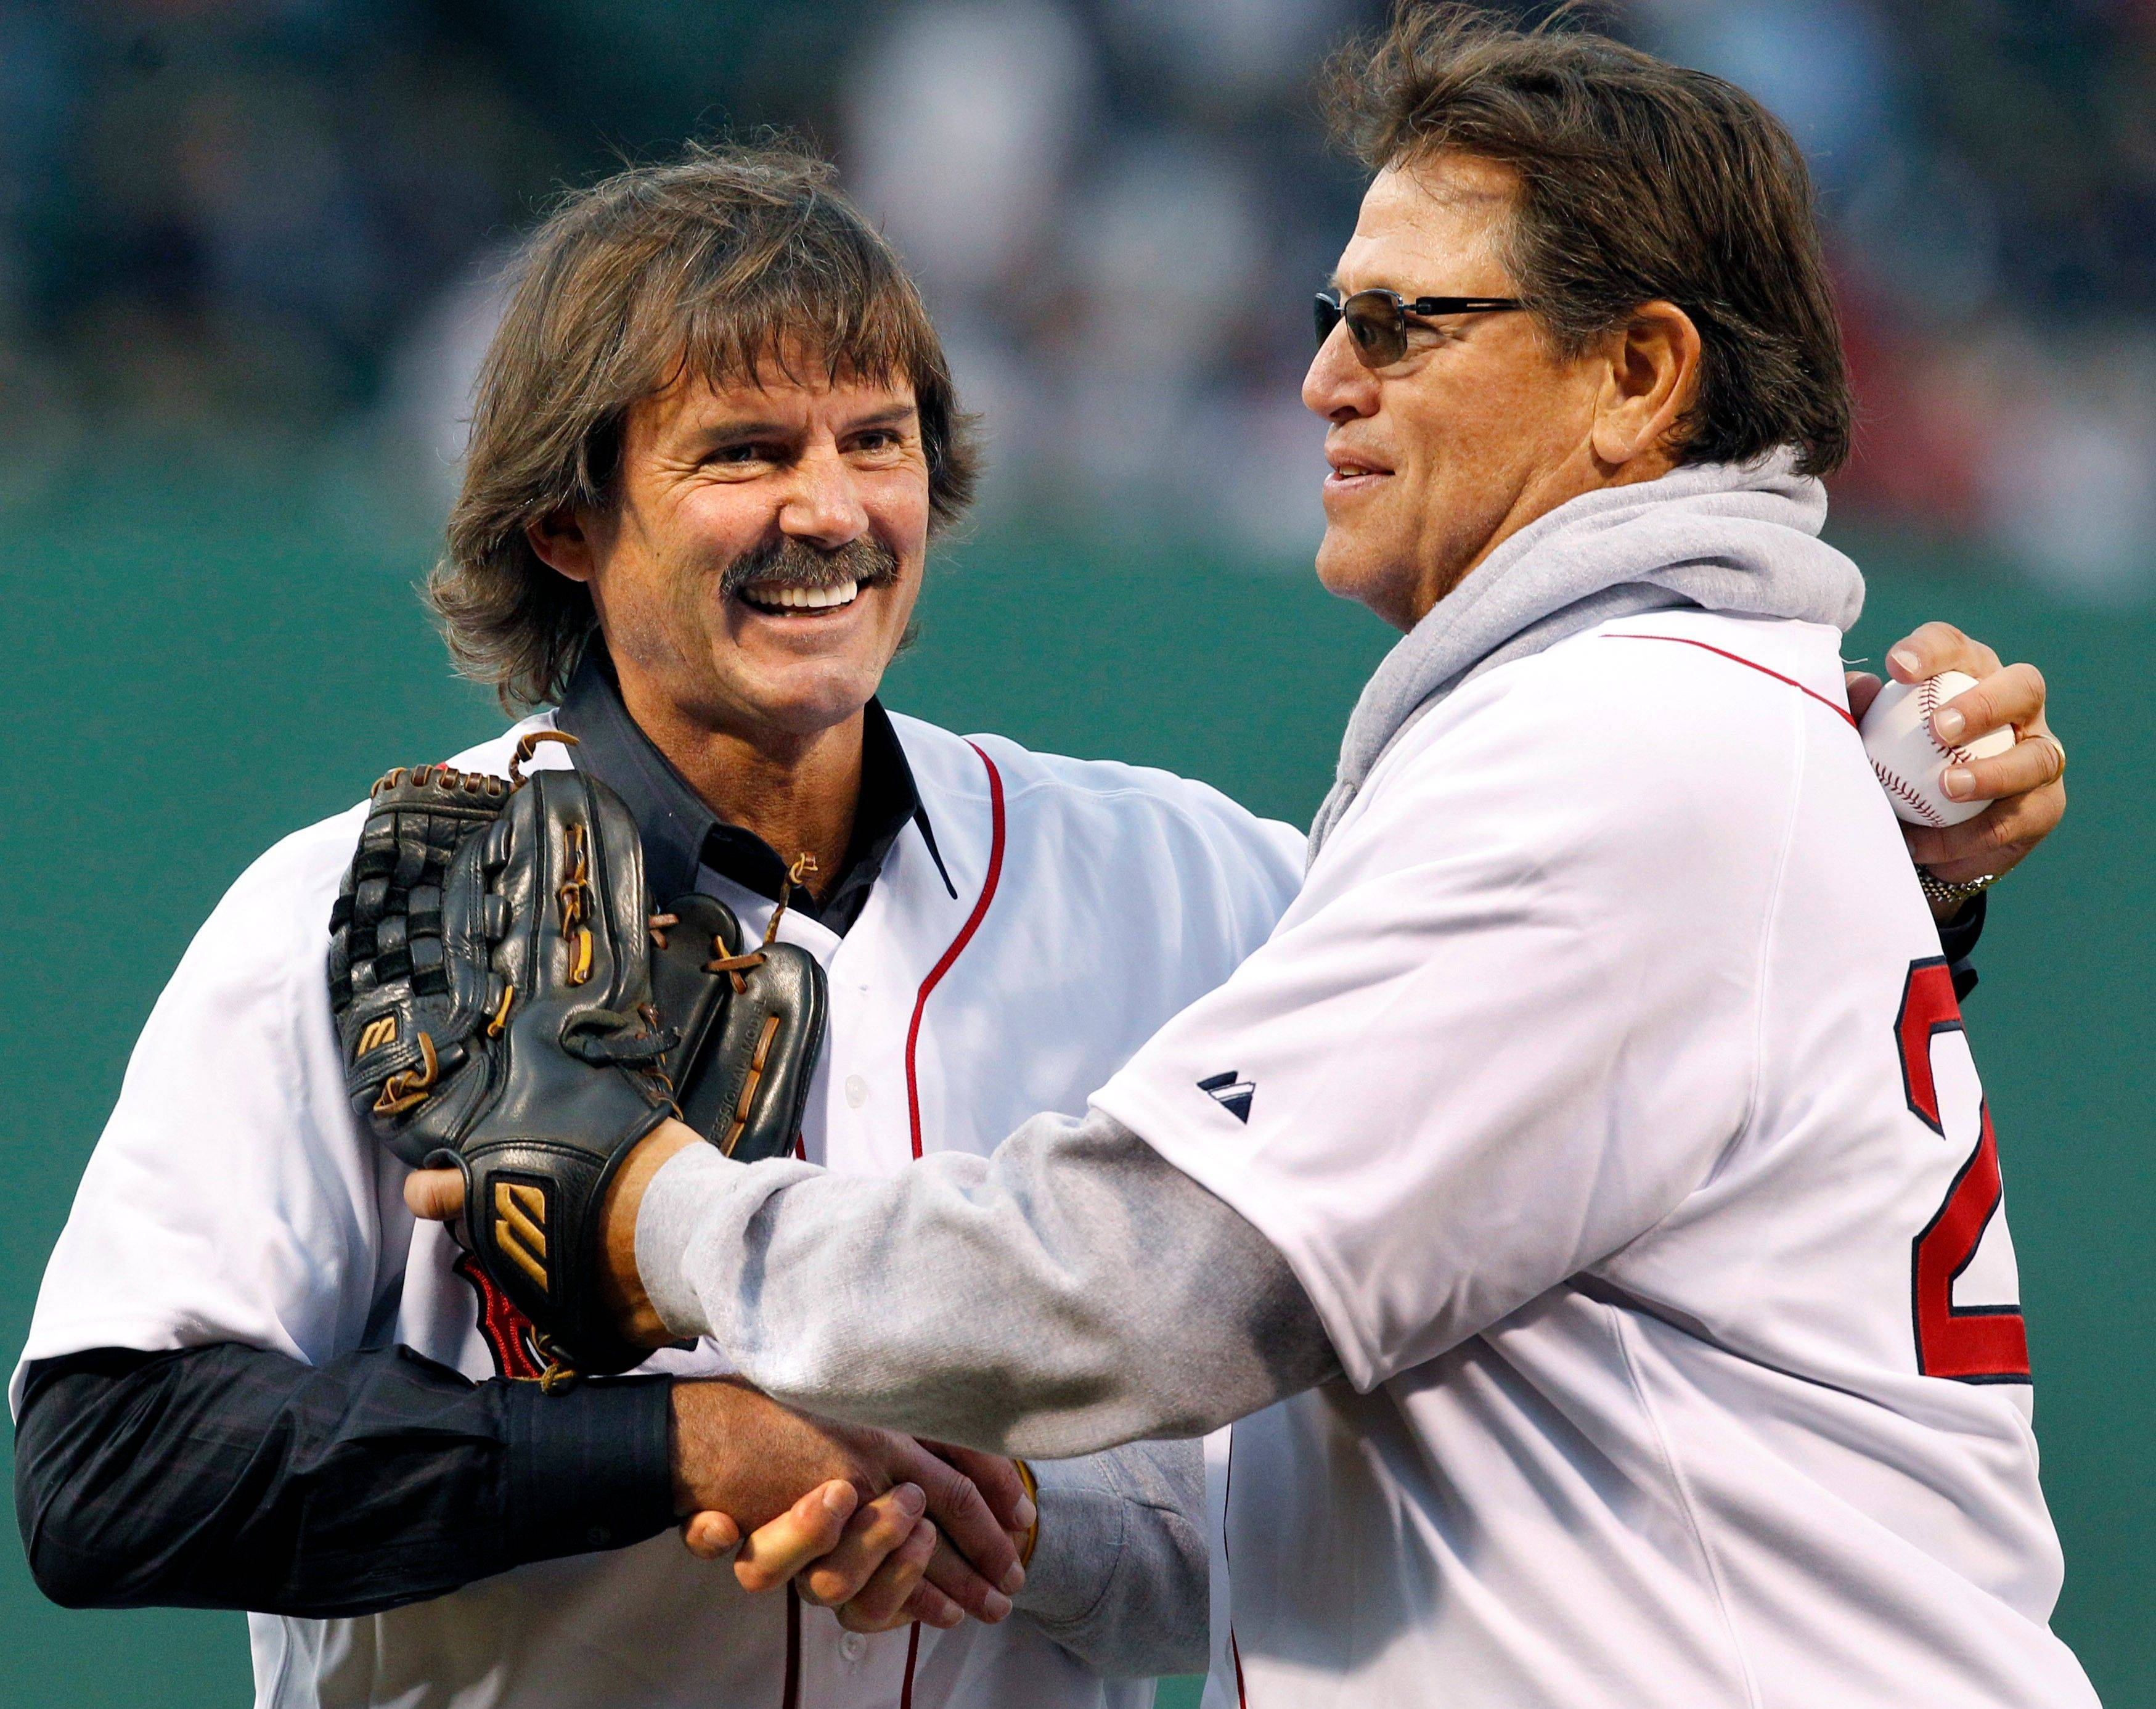 Boston Red Sox legends, pitcher Dennis Eckersley, left, and catcher Carlton Fisk shake hands after participating in the honorary first pitch prior to an interleague baseball game against the Chicago Cubs at Fenway Park in Boston Friday, May 20, 2011.